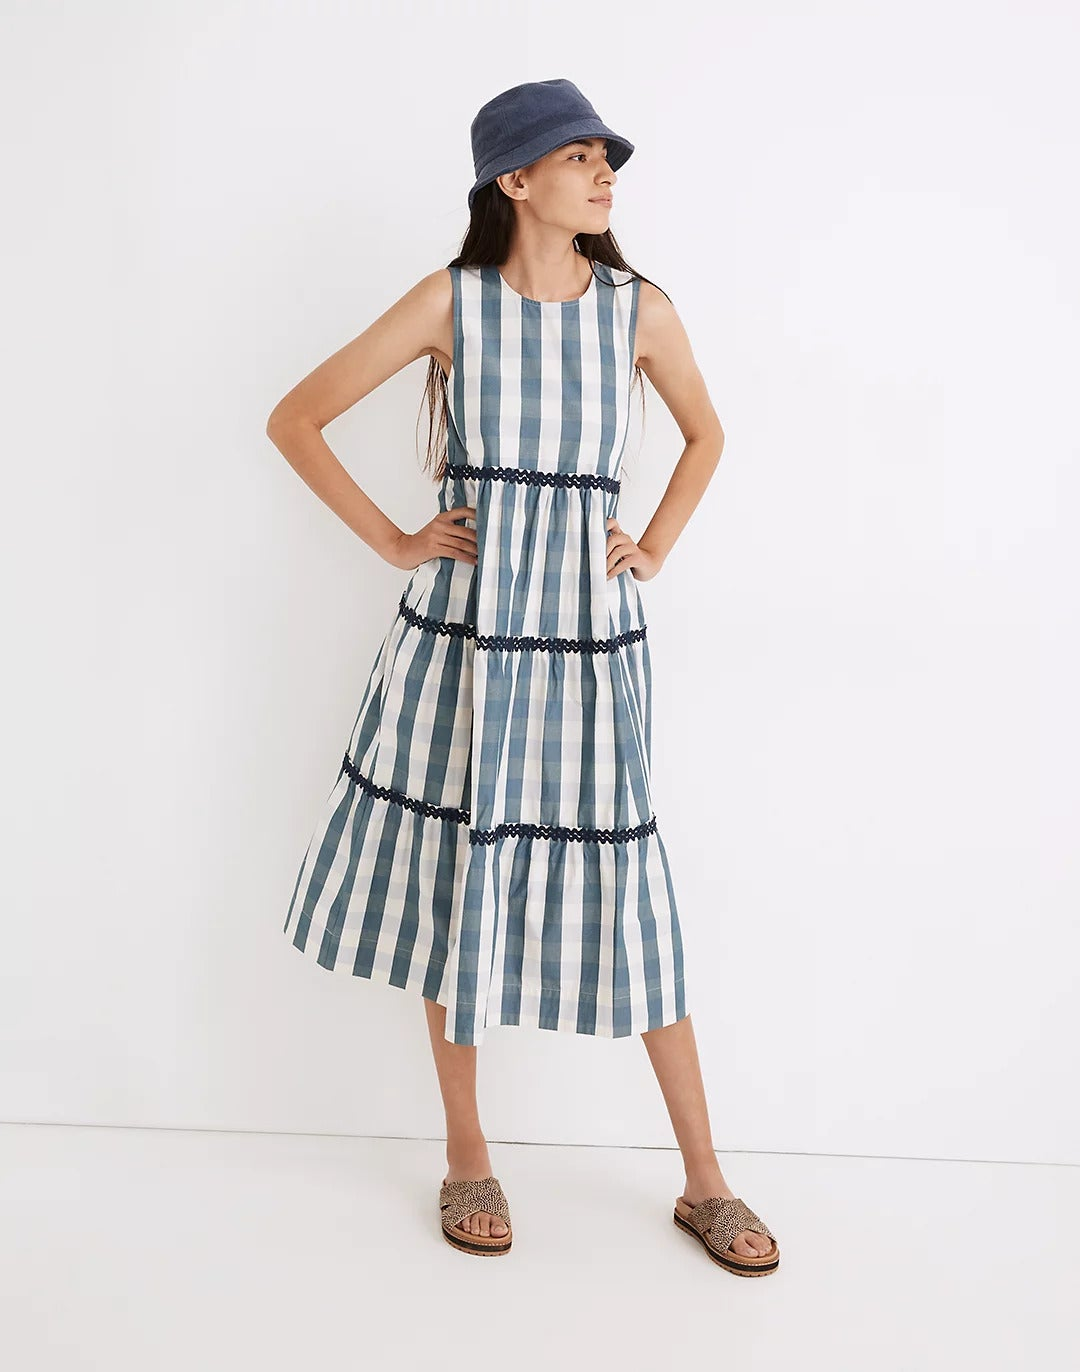 model wearing the blue and white check dress with crisscross sandals and a bucket hat